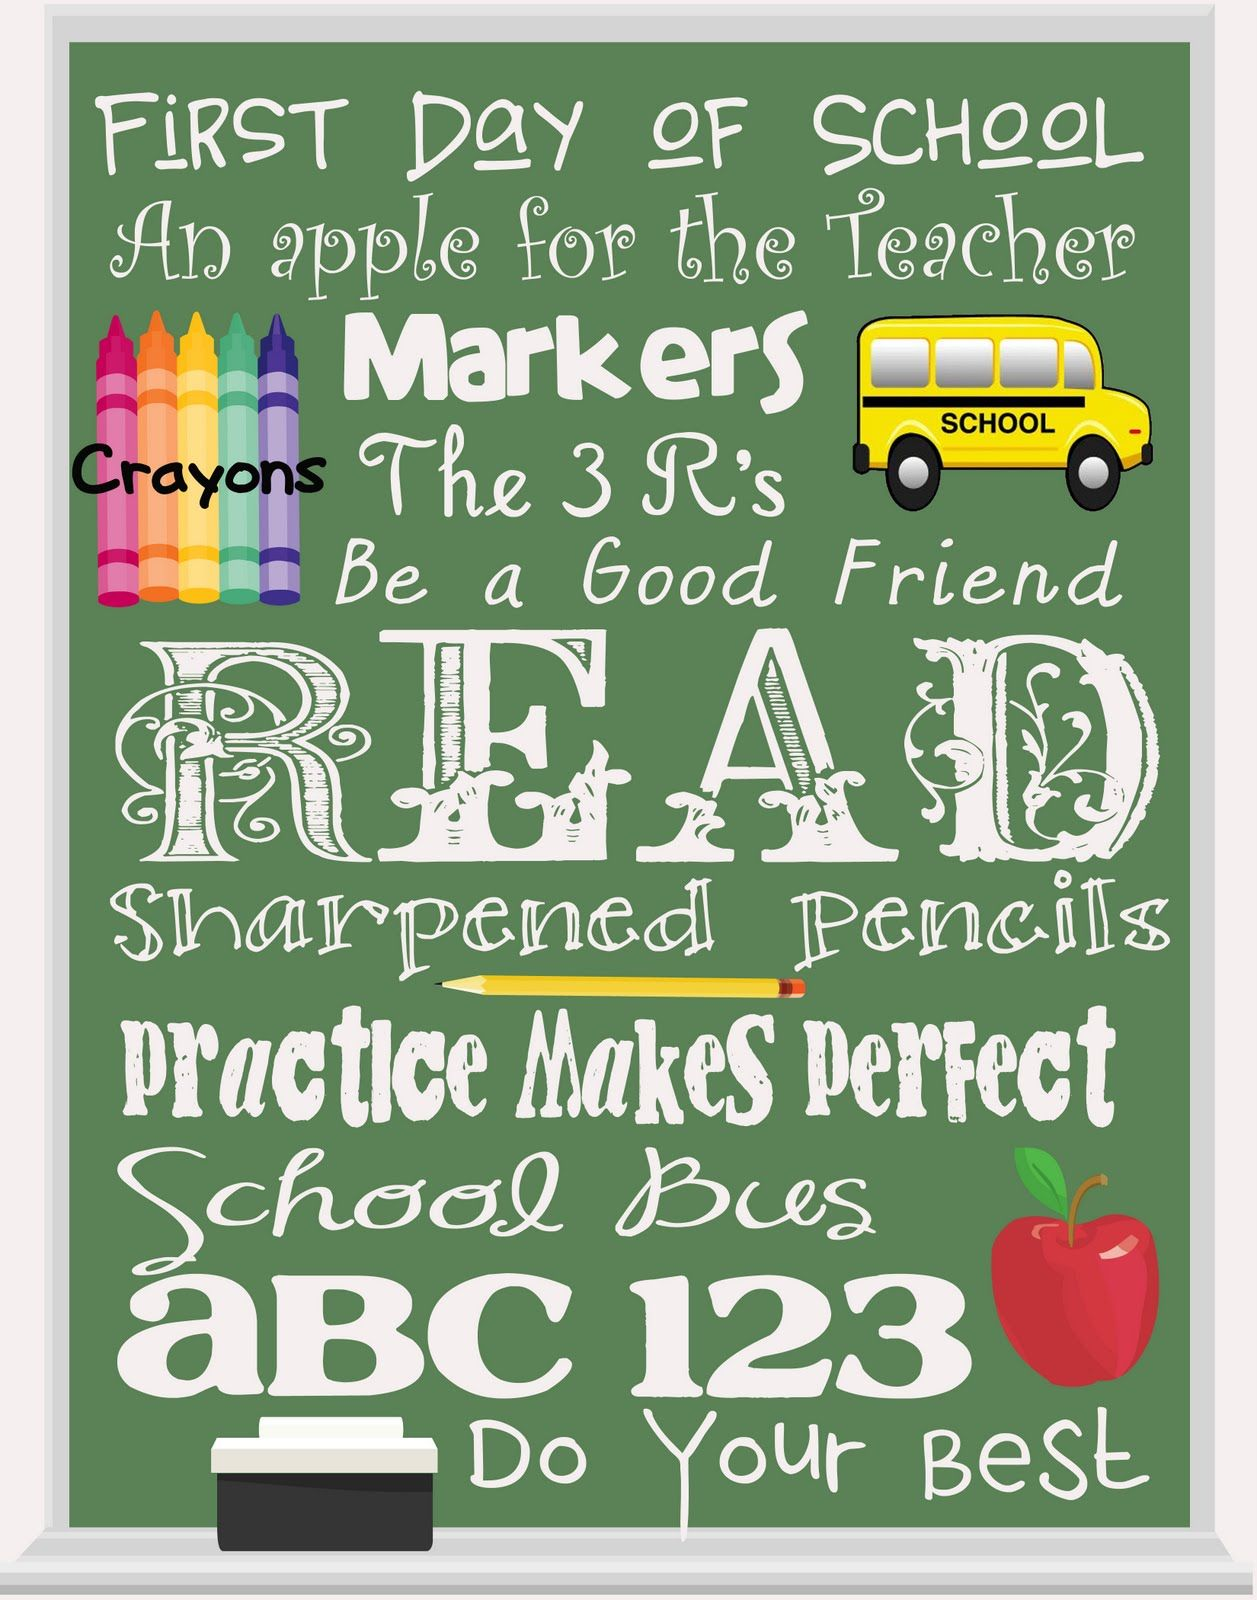 save and print for classroom